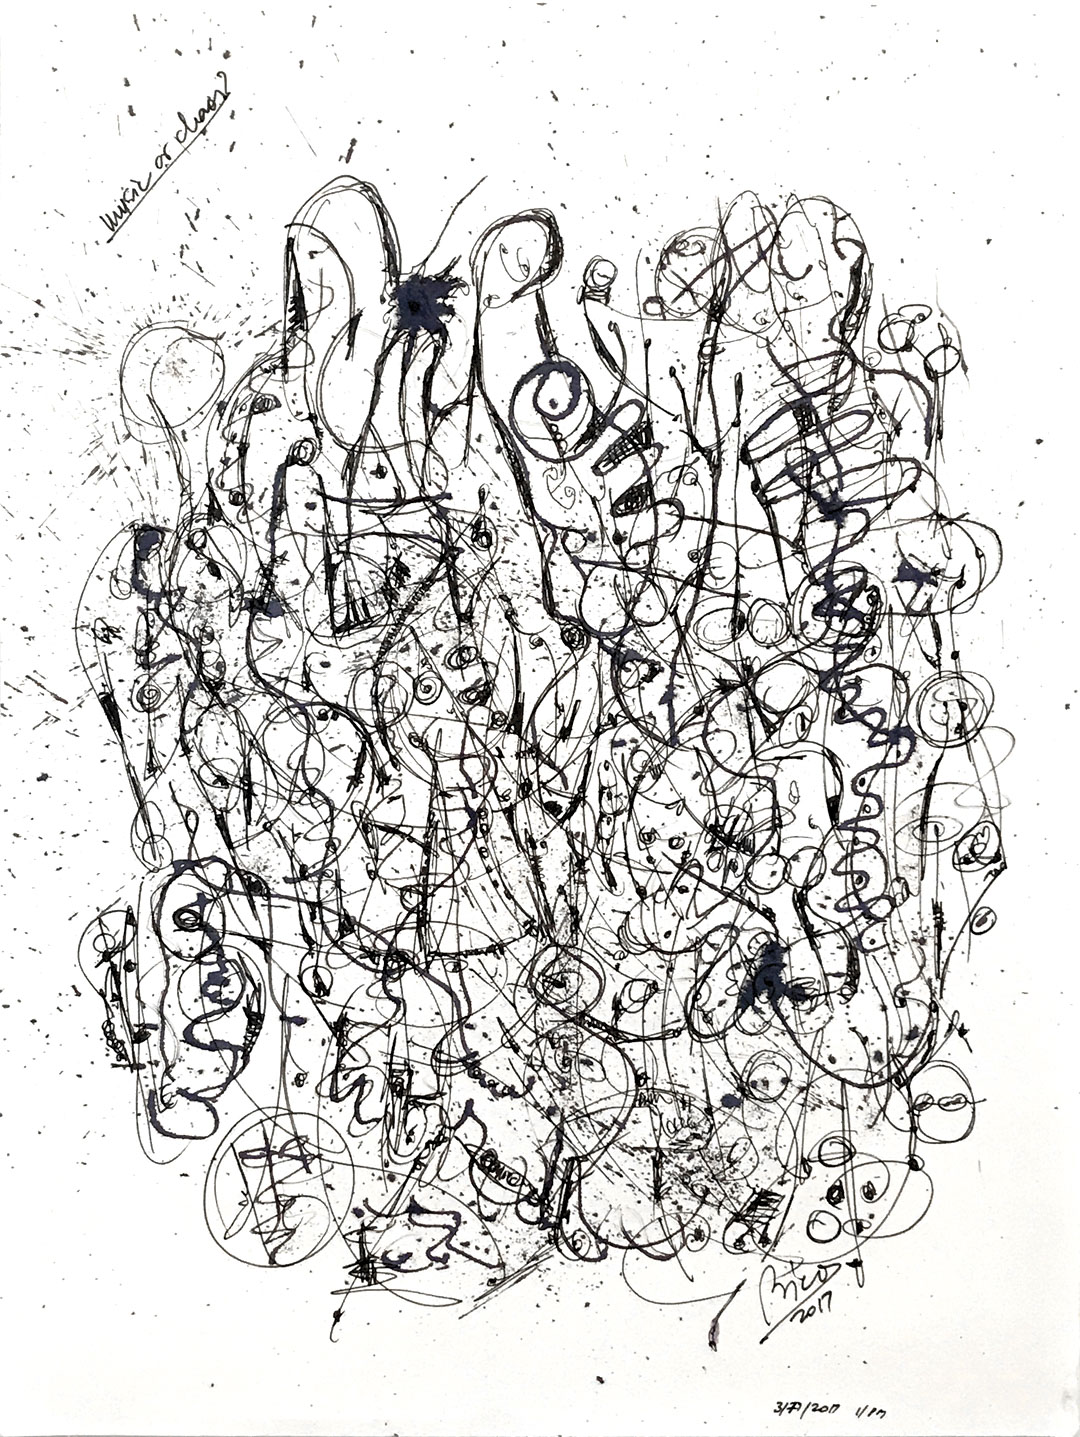 Music or Chaos ink on paper, 9x12